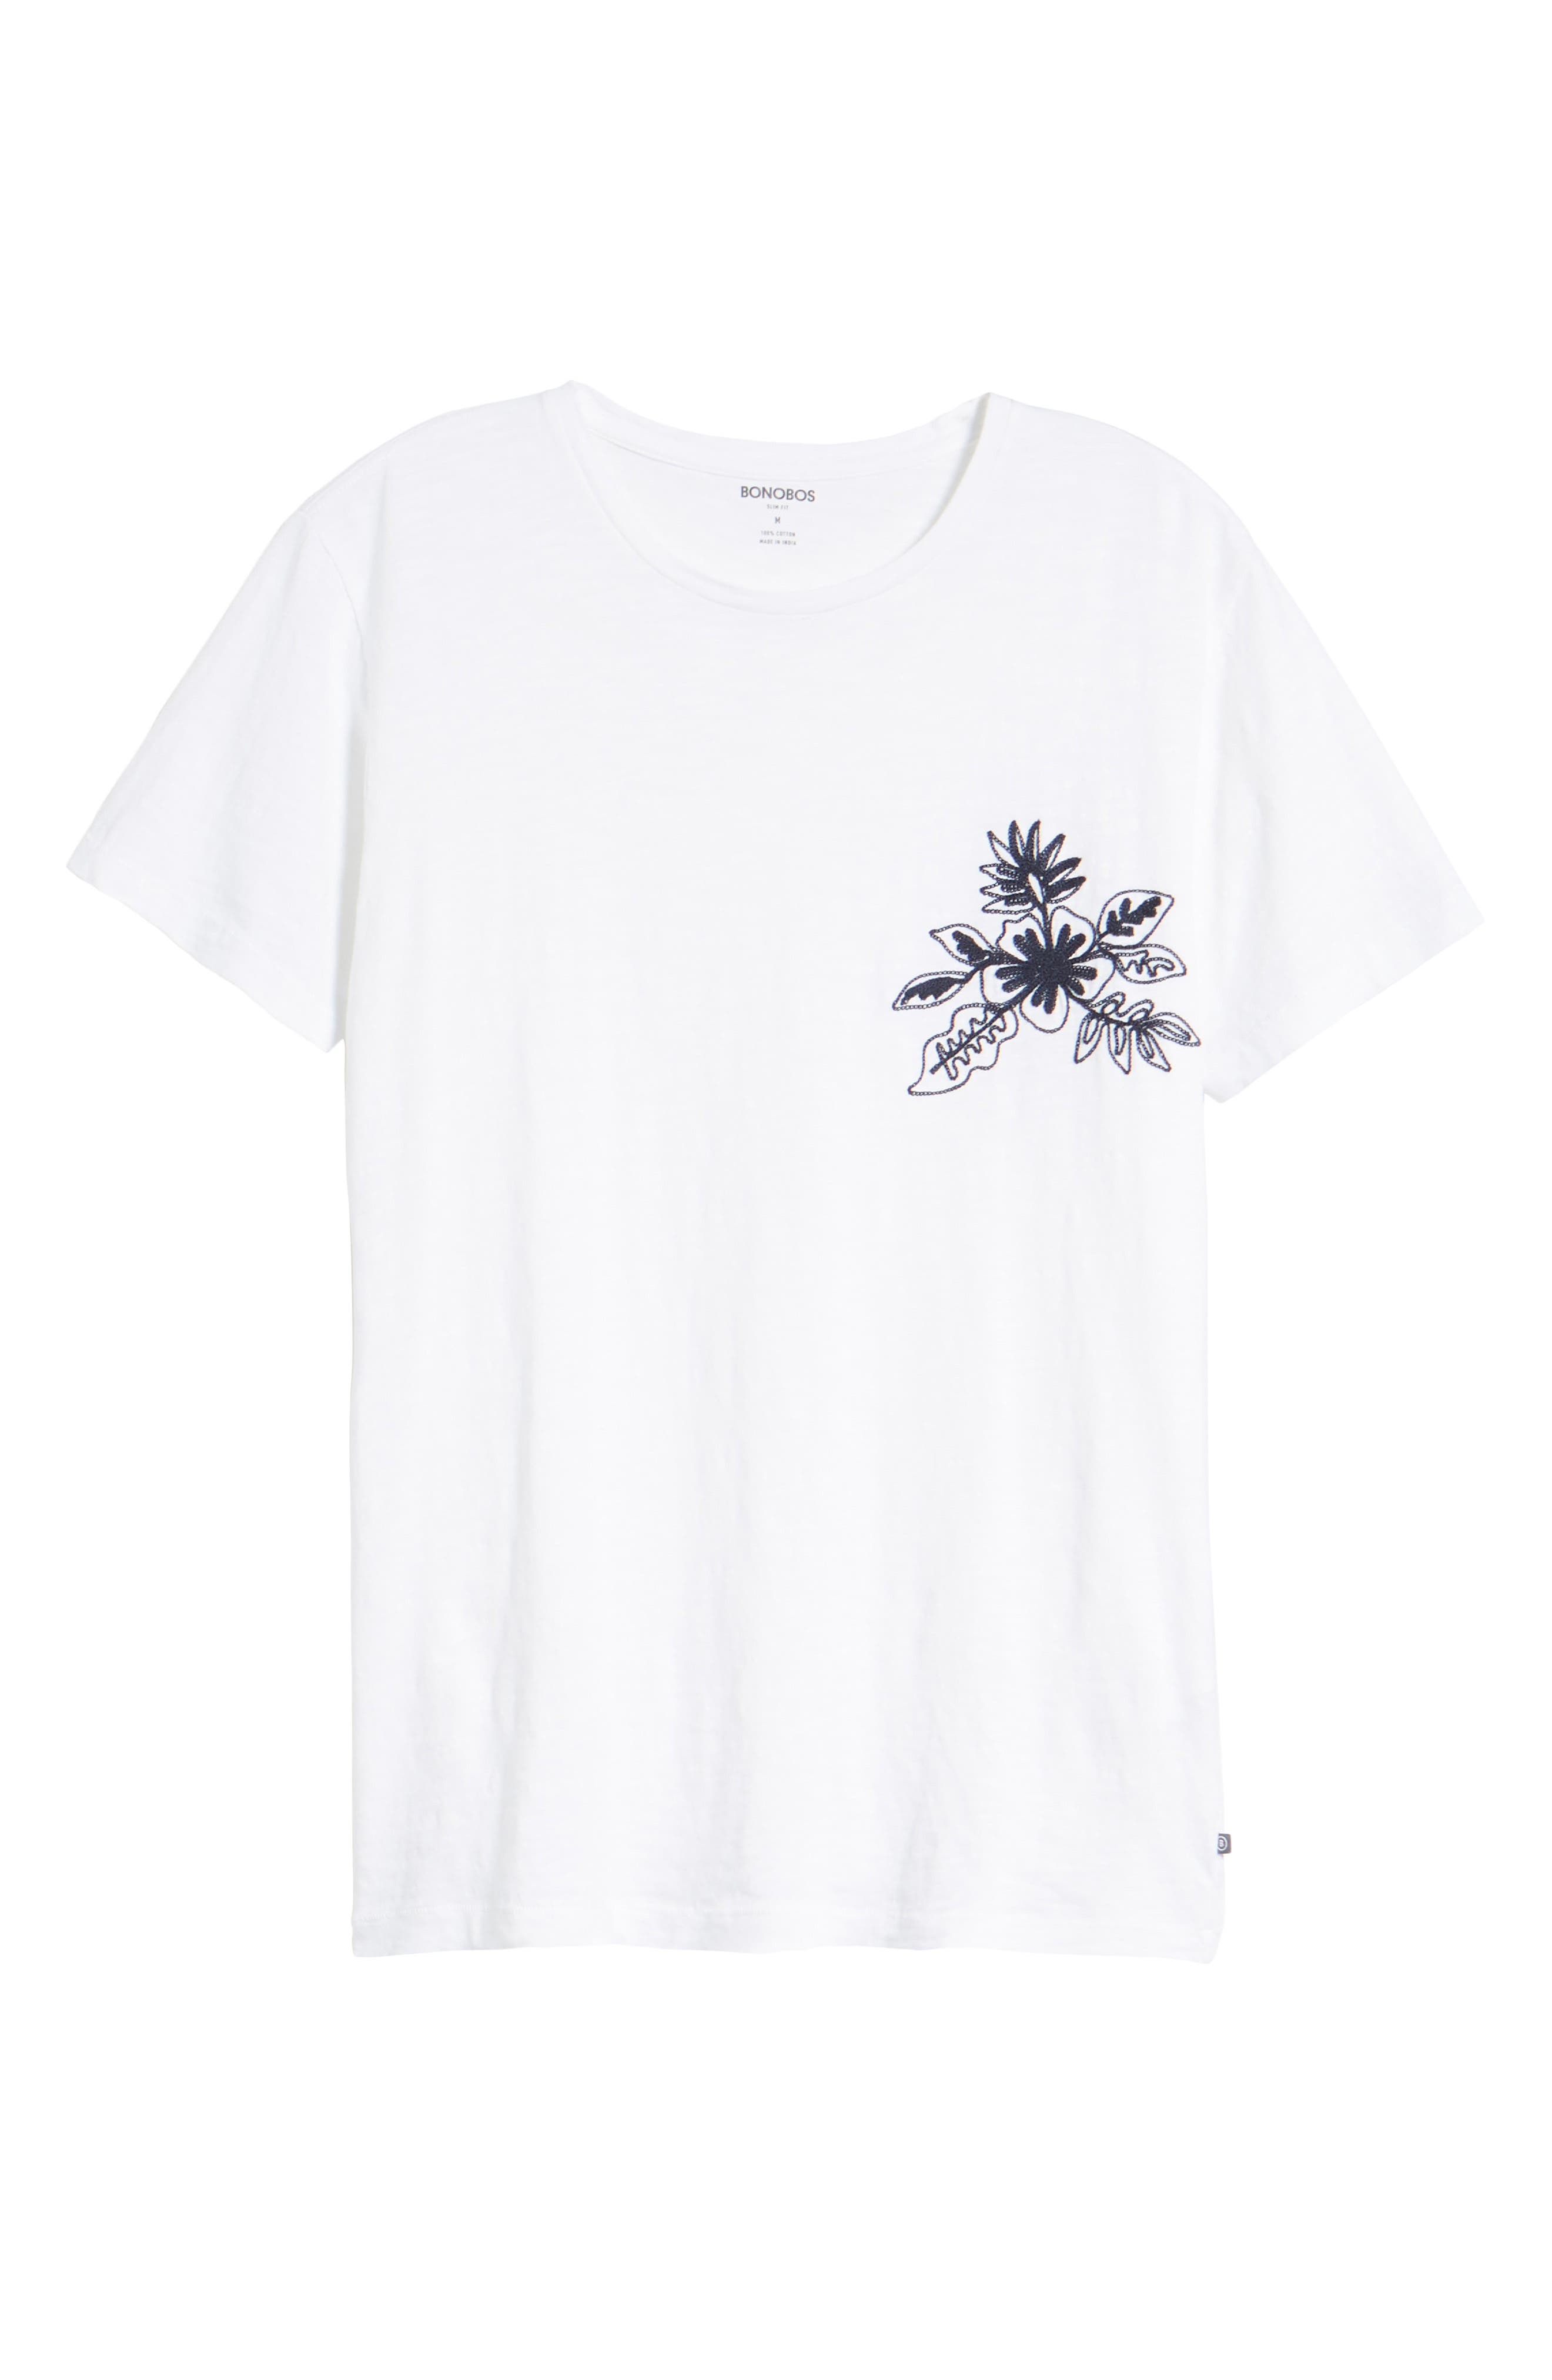 Embroidered T-Shirt,                             Alternate thumbnail 6, color,                             Floral Embroidery